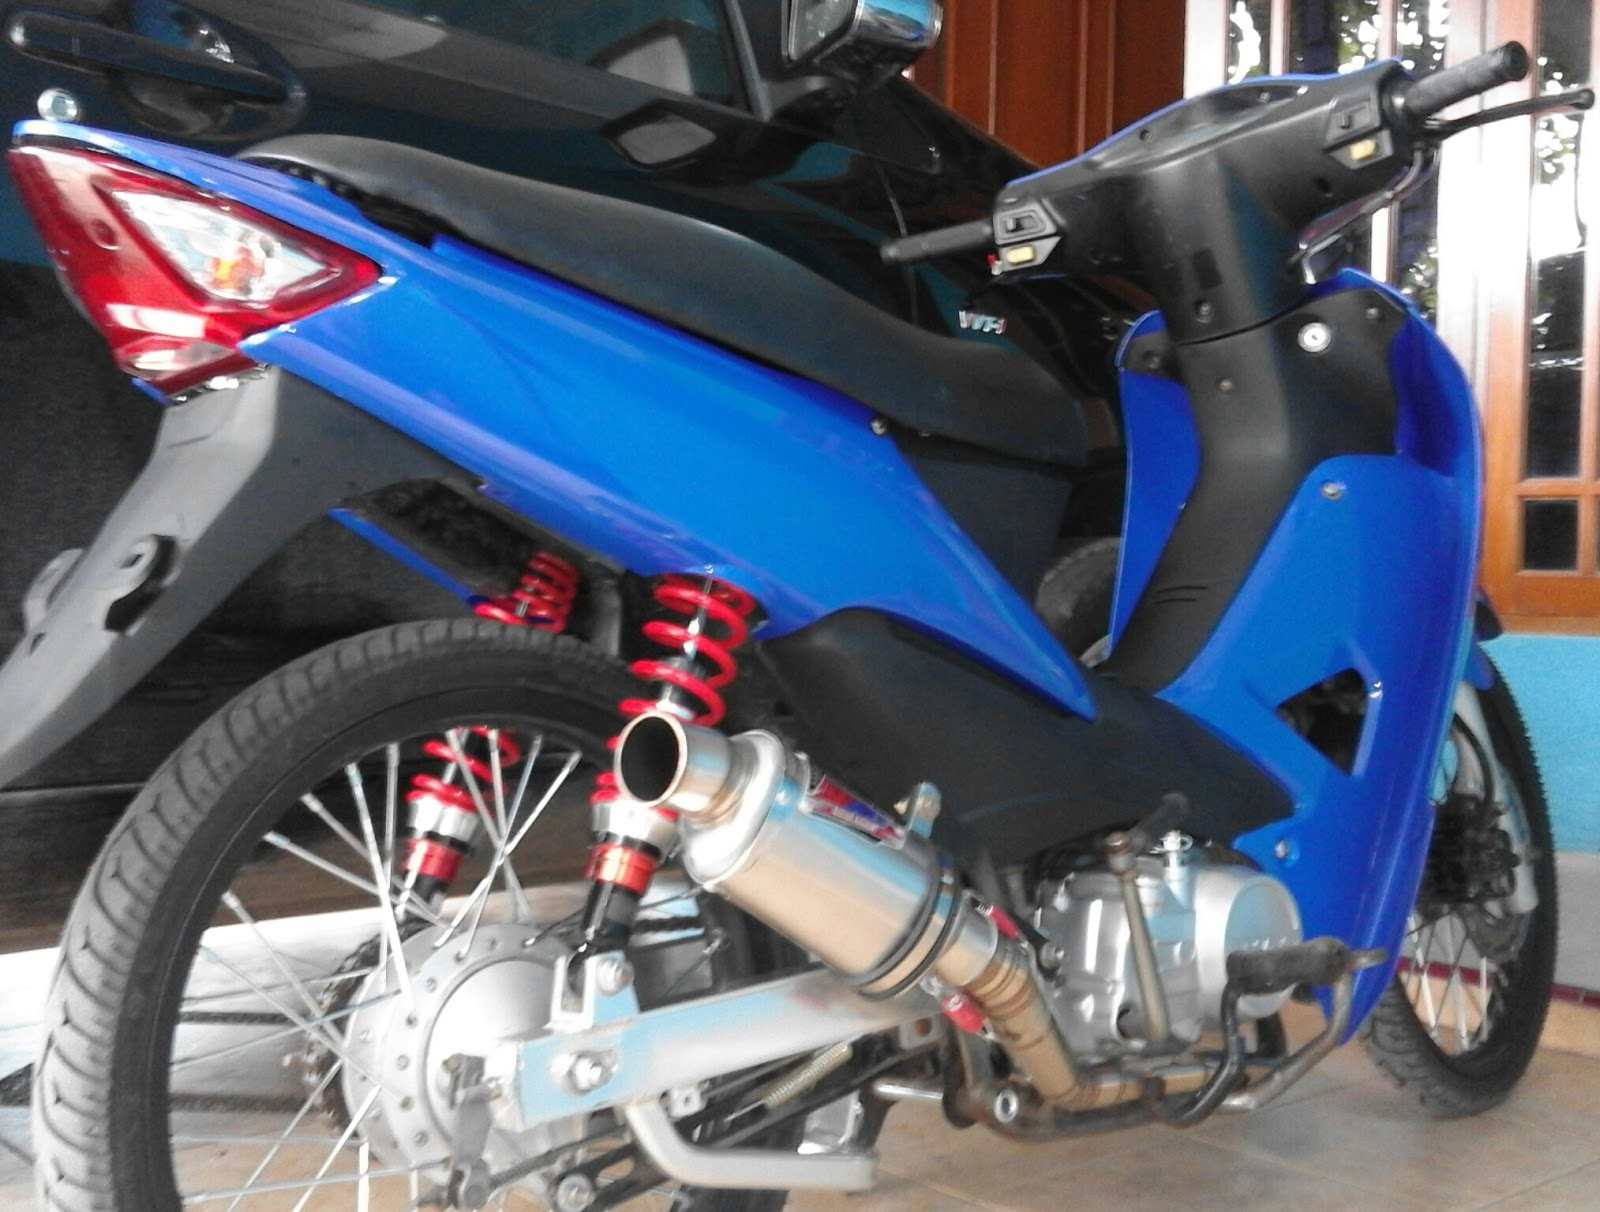 Modifikasi Motor Supra Fit Thailook Semut Modifikasi